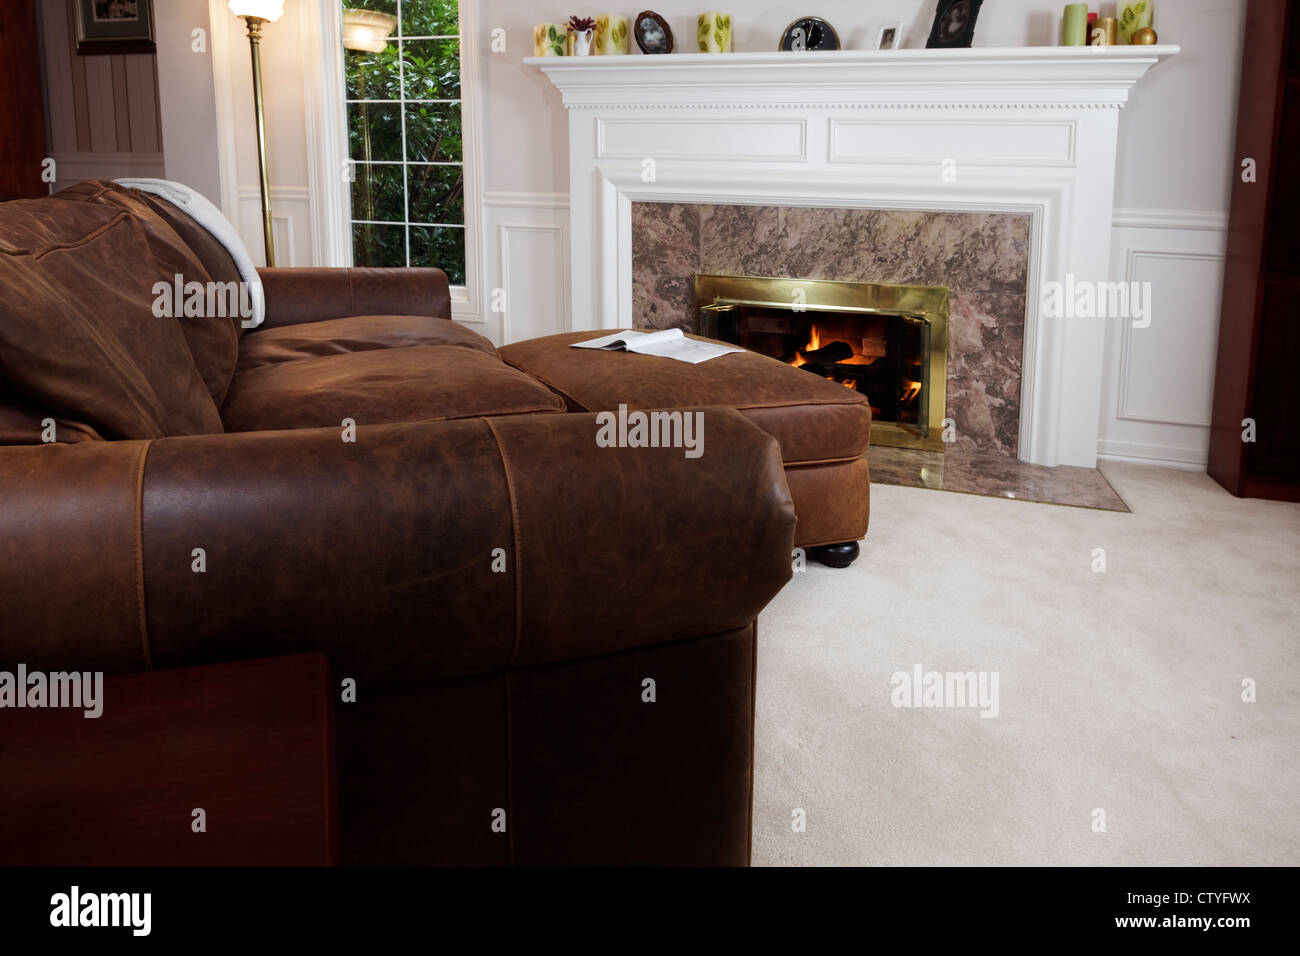 Comfy sofa & ottoman to read by the living room fire - Stock Image